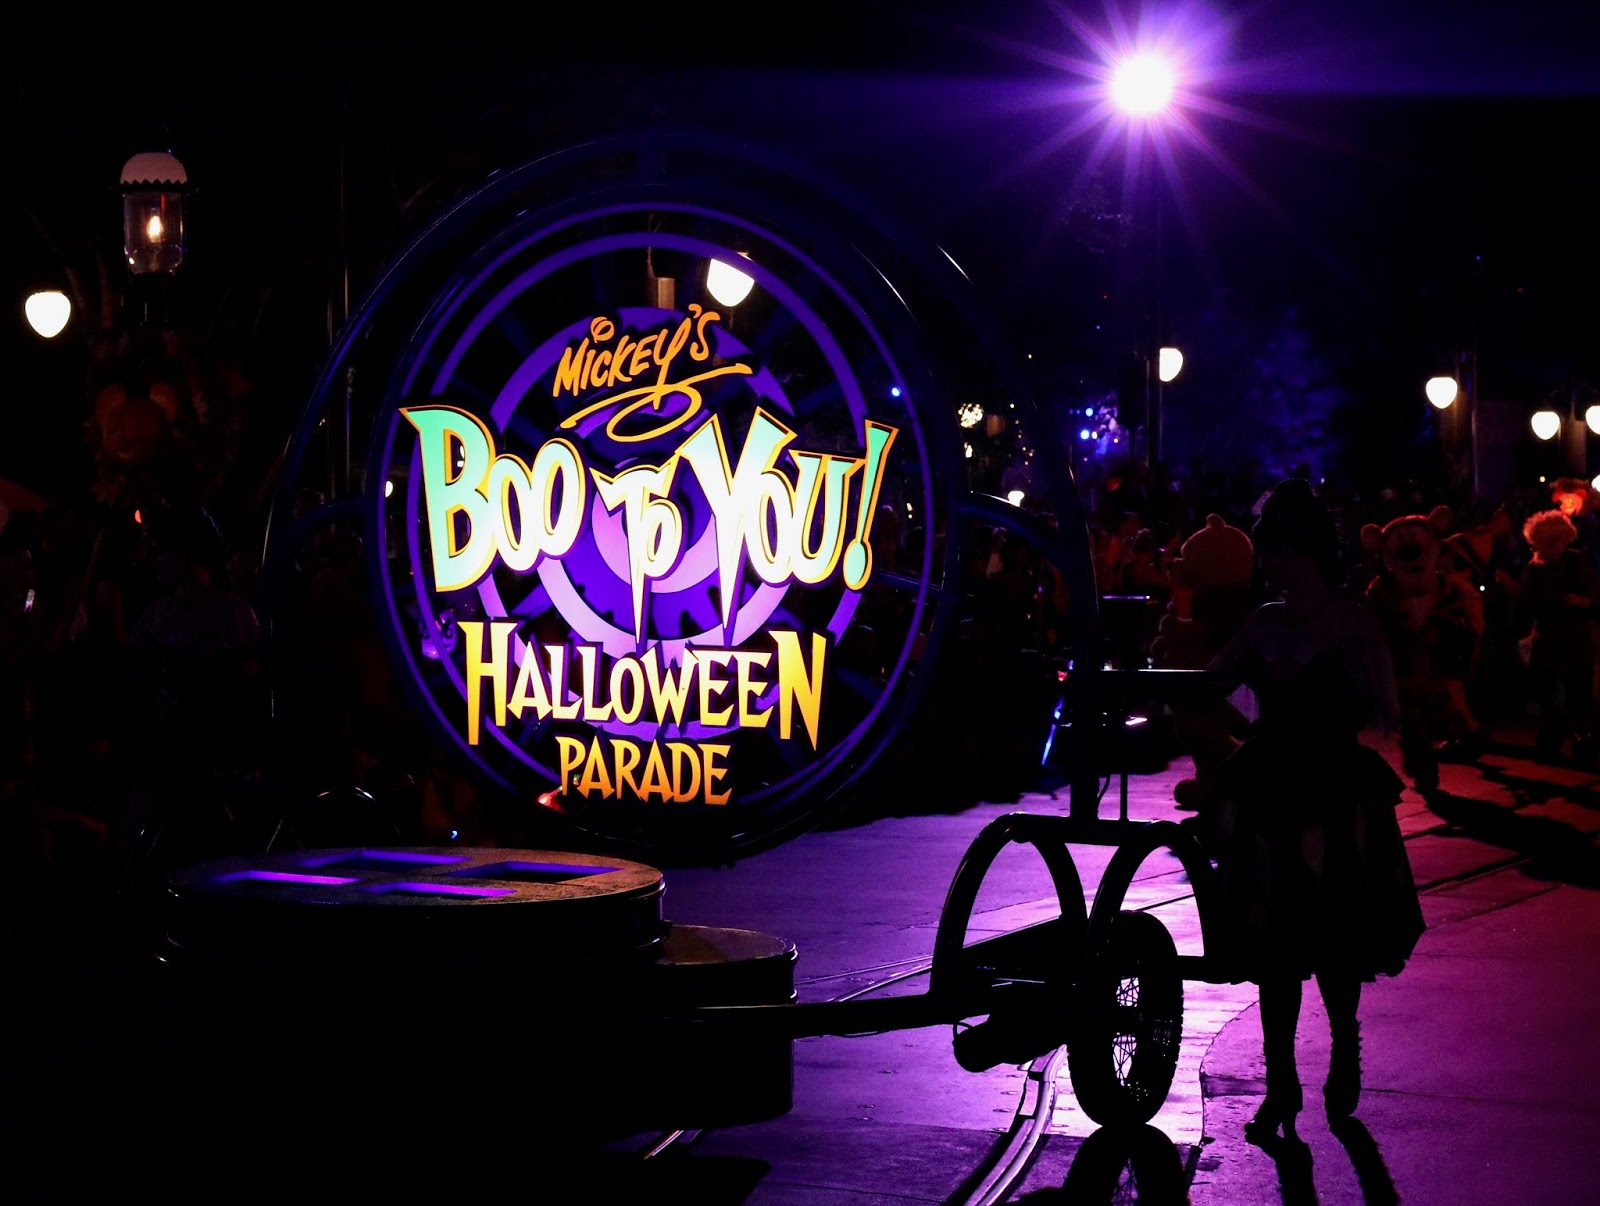 Micky's-Not-So-Scary-Halloween-Party-Boo-To-You-Parade-Magic-Kingdom-Disney-World